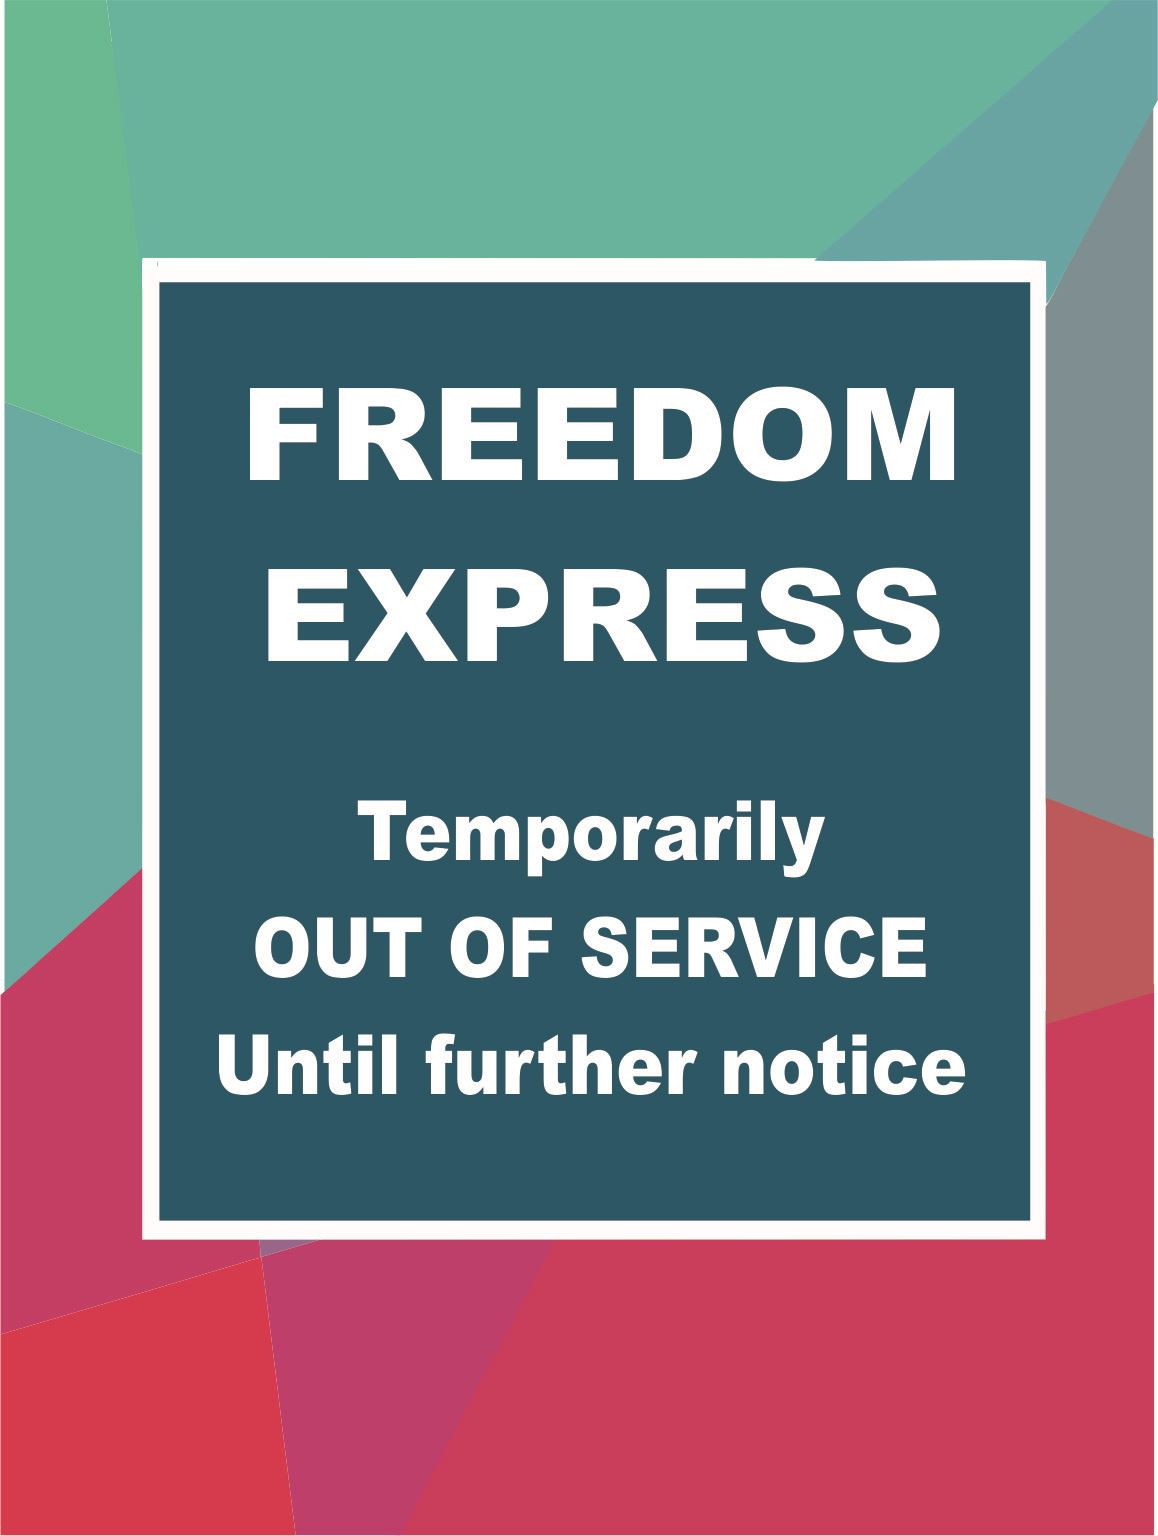 Freedom Express - Update